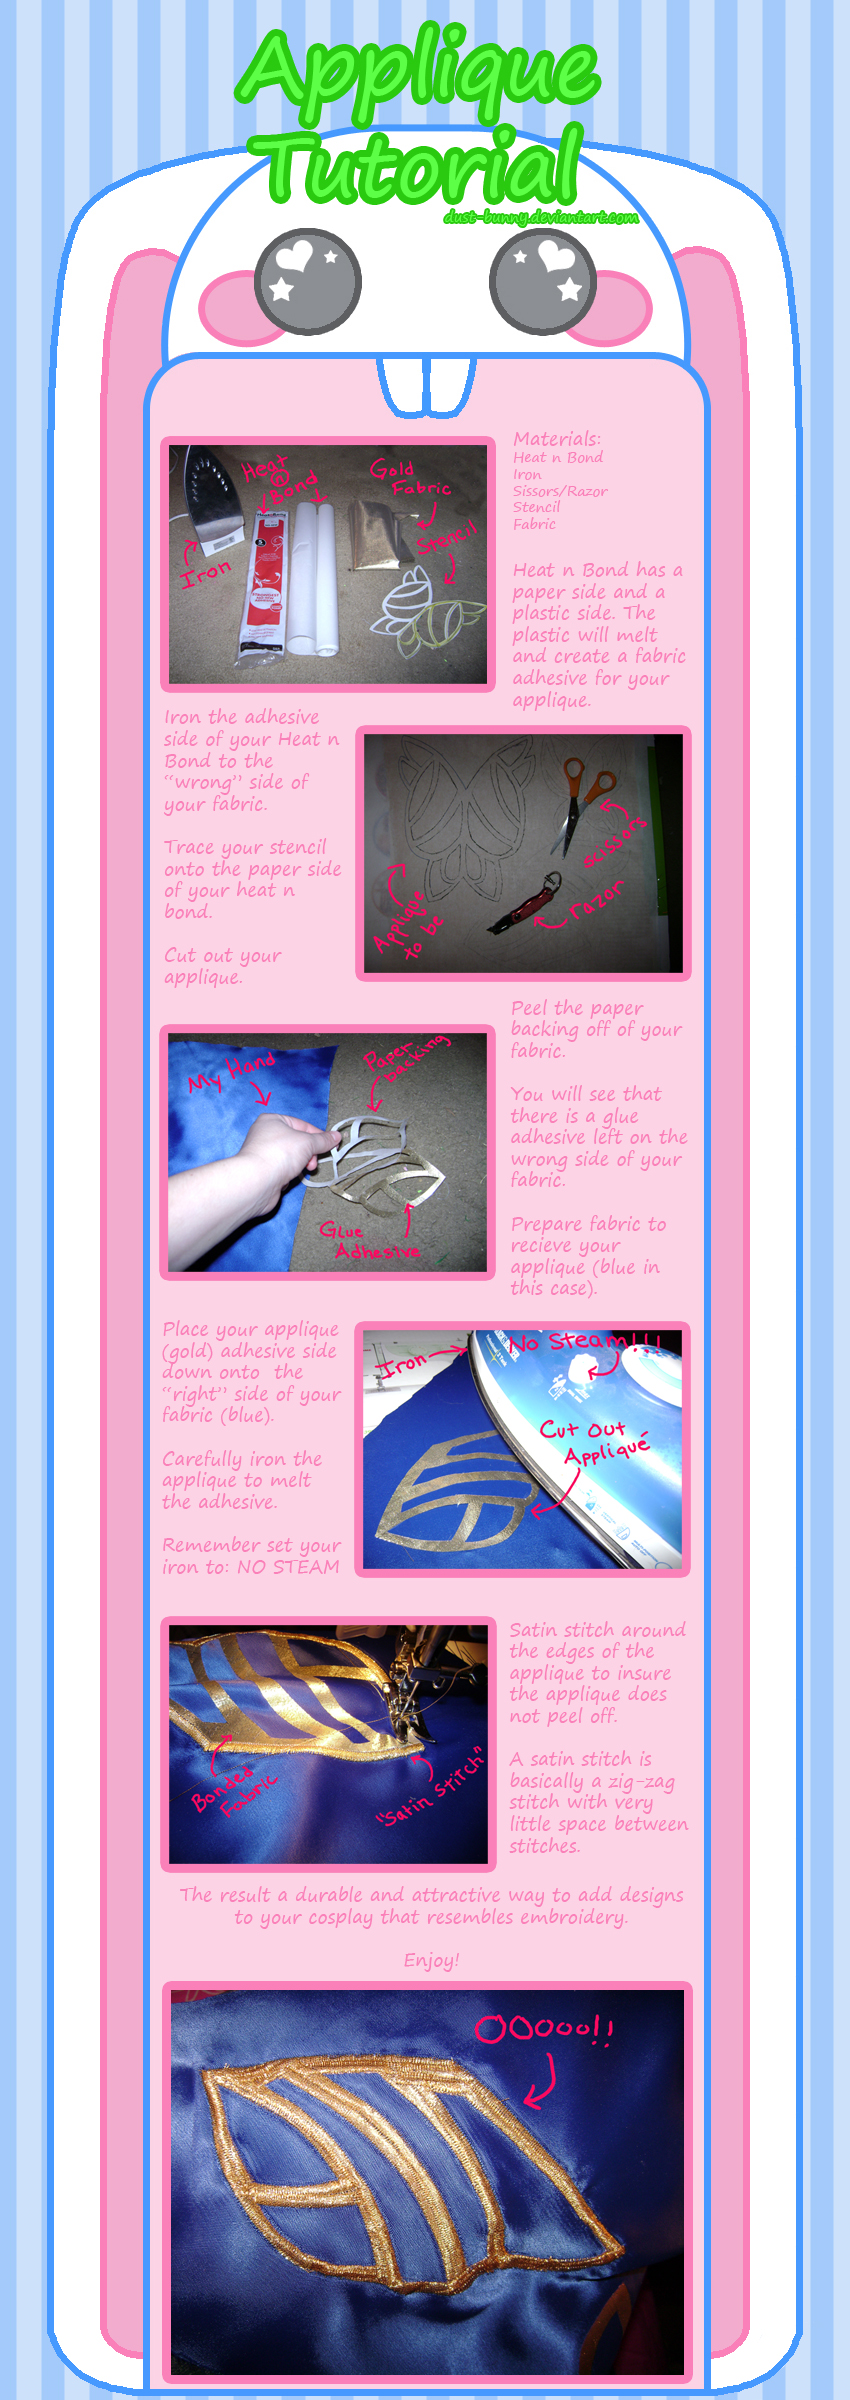 Applique Tutorial by dust-bunny